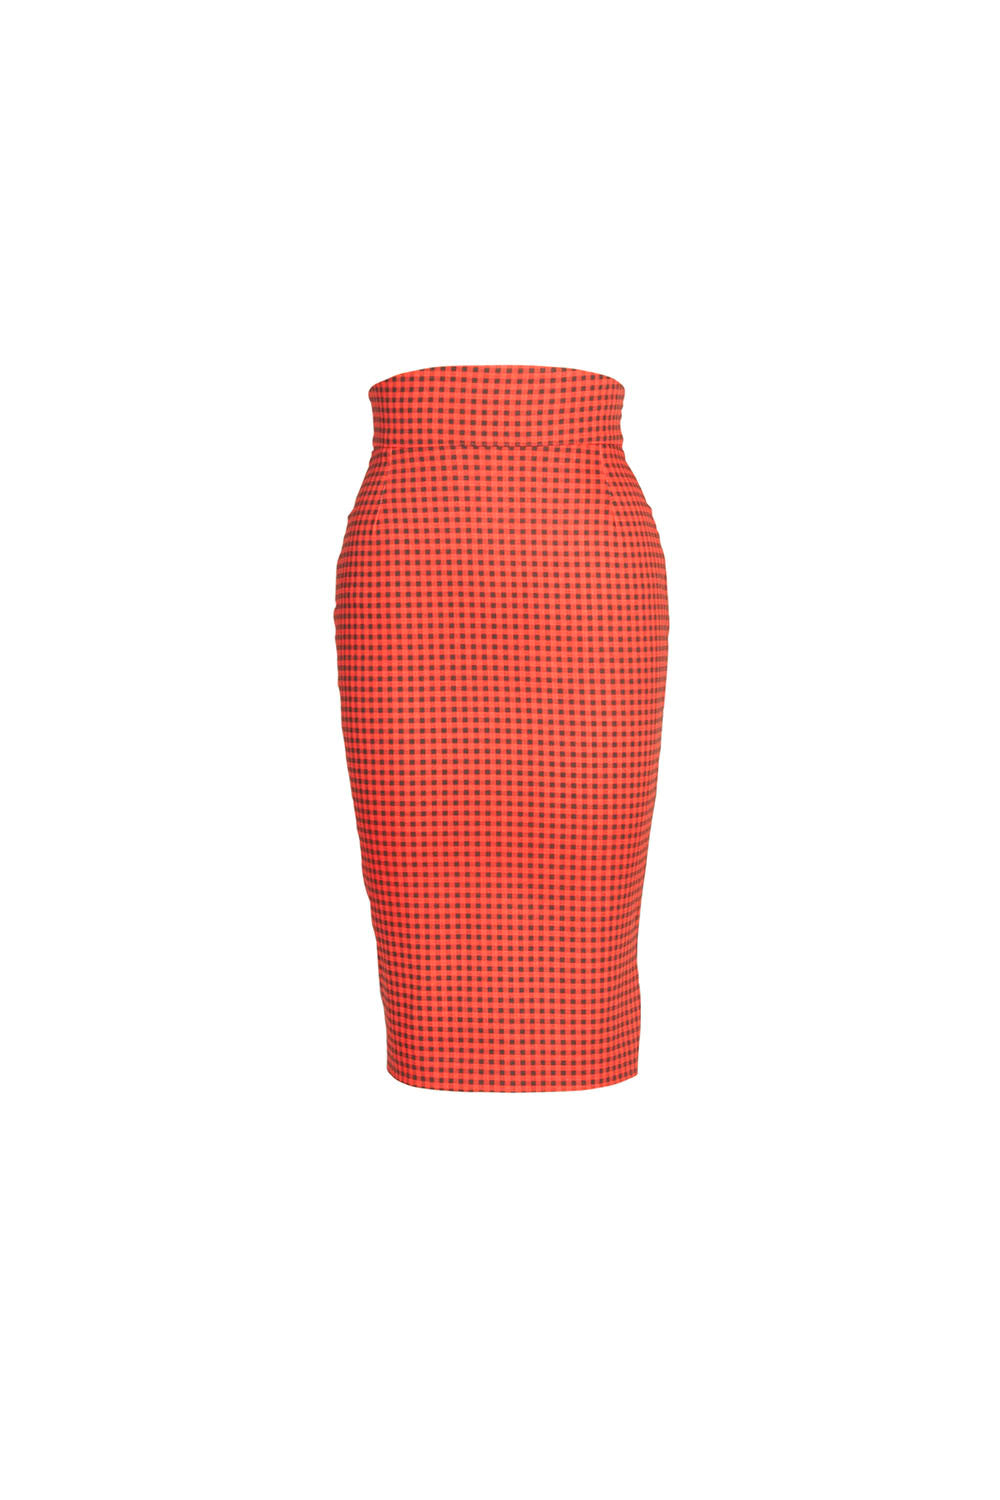 Women's Clothing Pinup Couture POLKA DOT PENCIL SKIRT